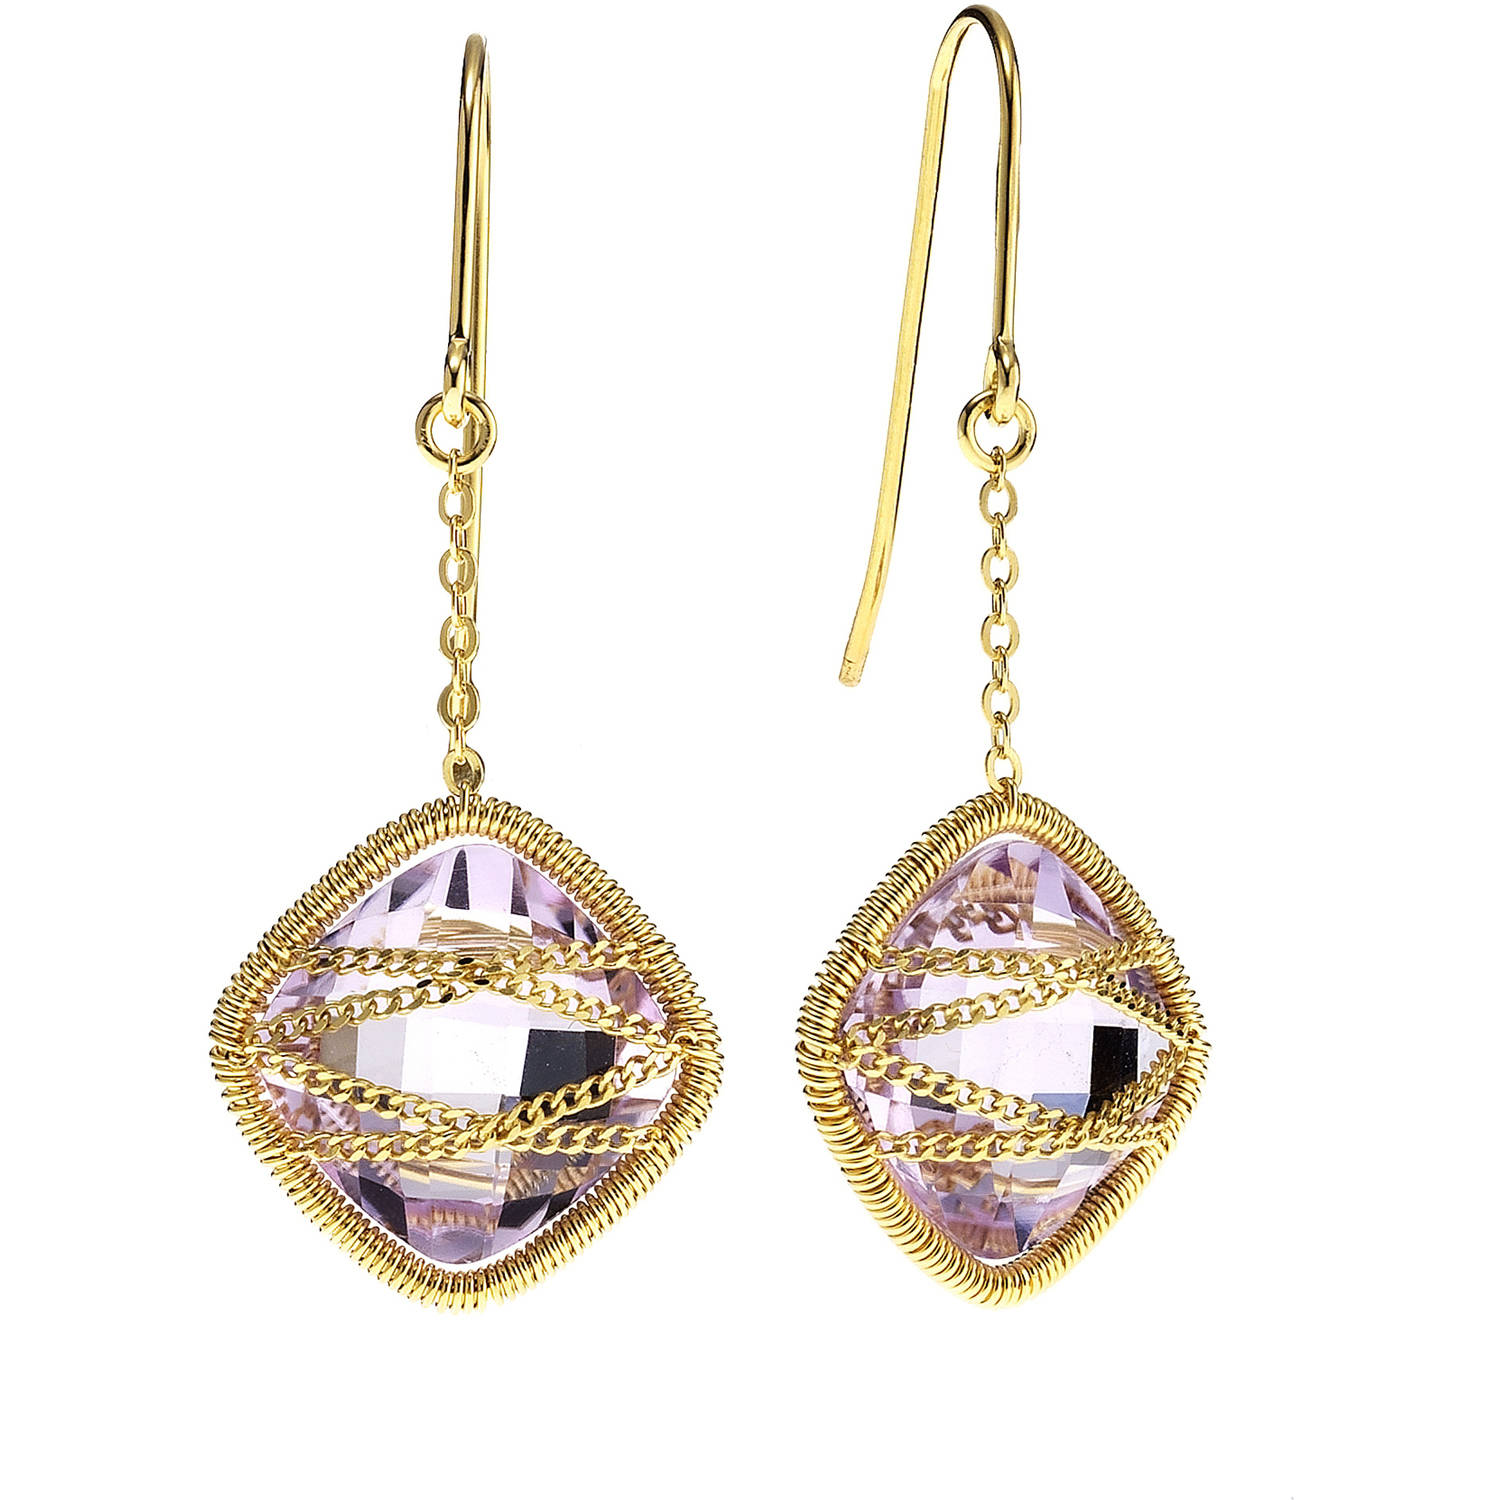 Image of 5th & Main 18kt Gold over Sterling Silver Hand-Wrapped Squared Amethyst Stone Earrings